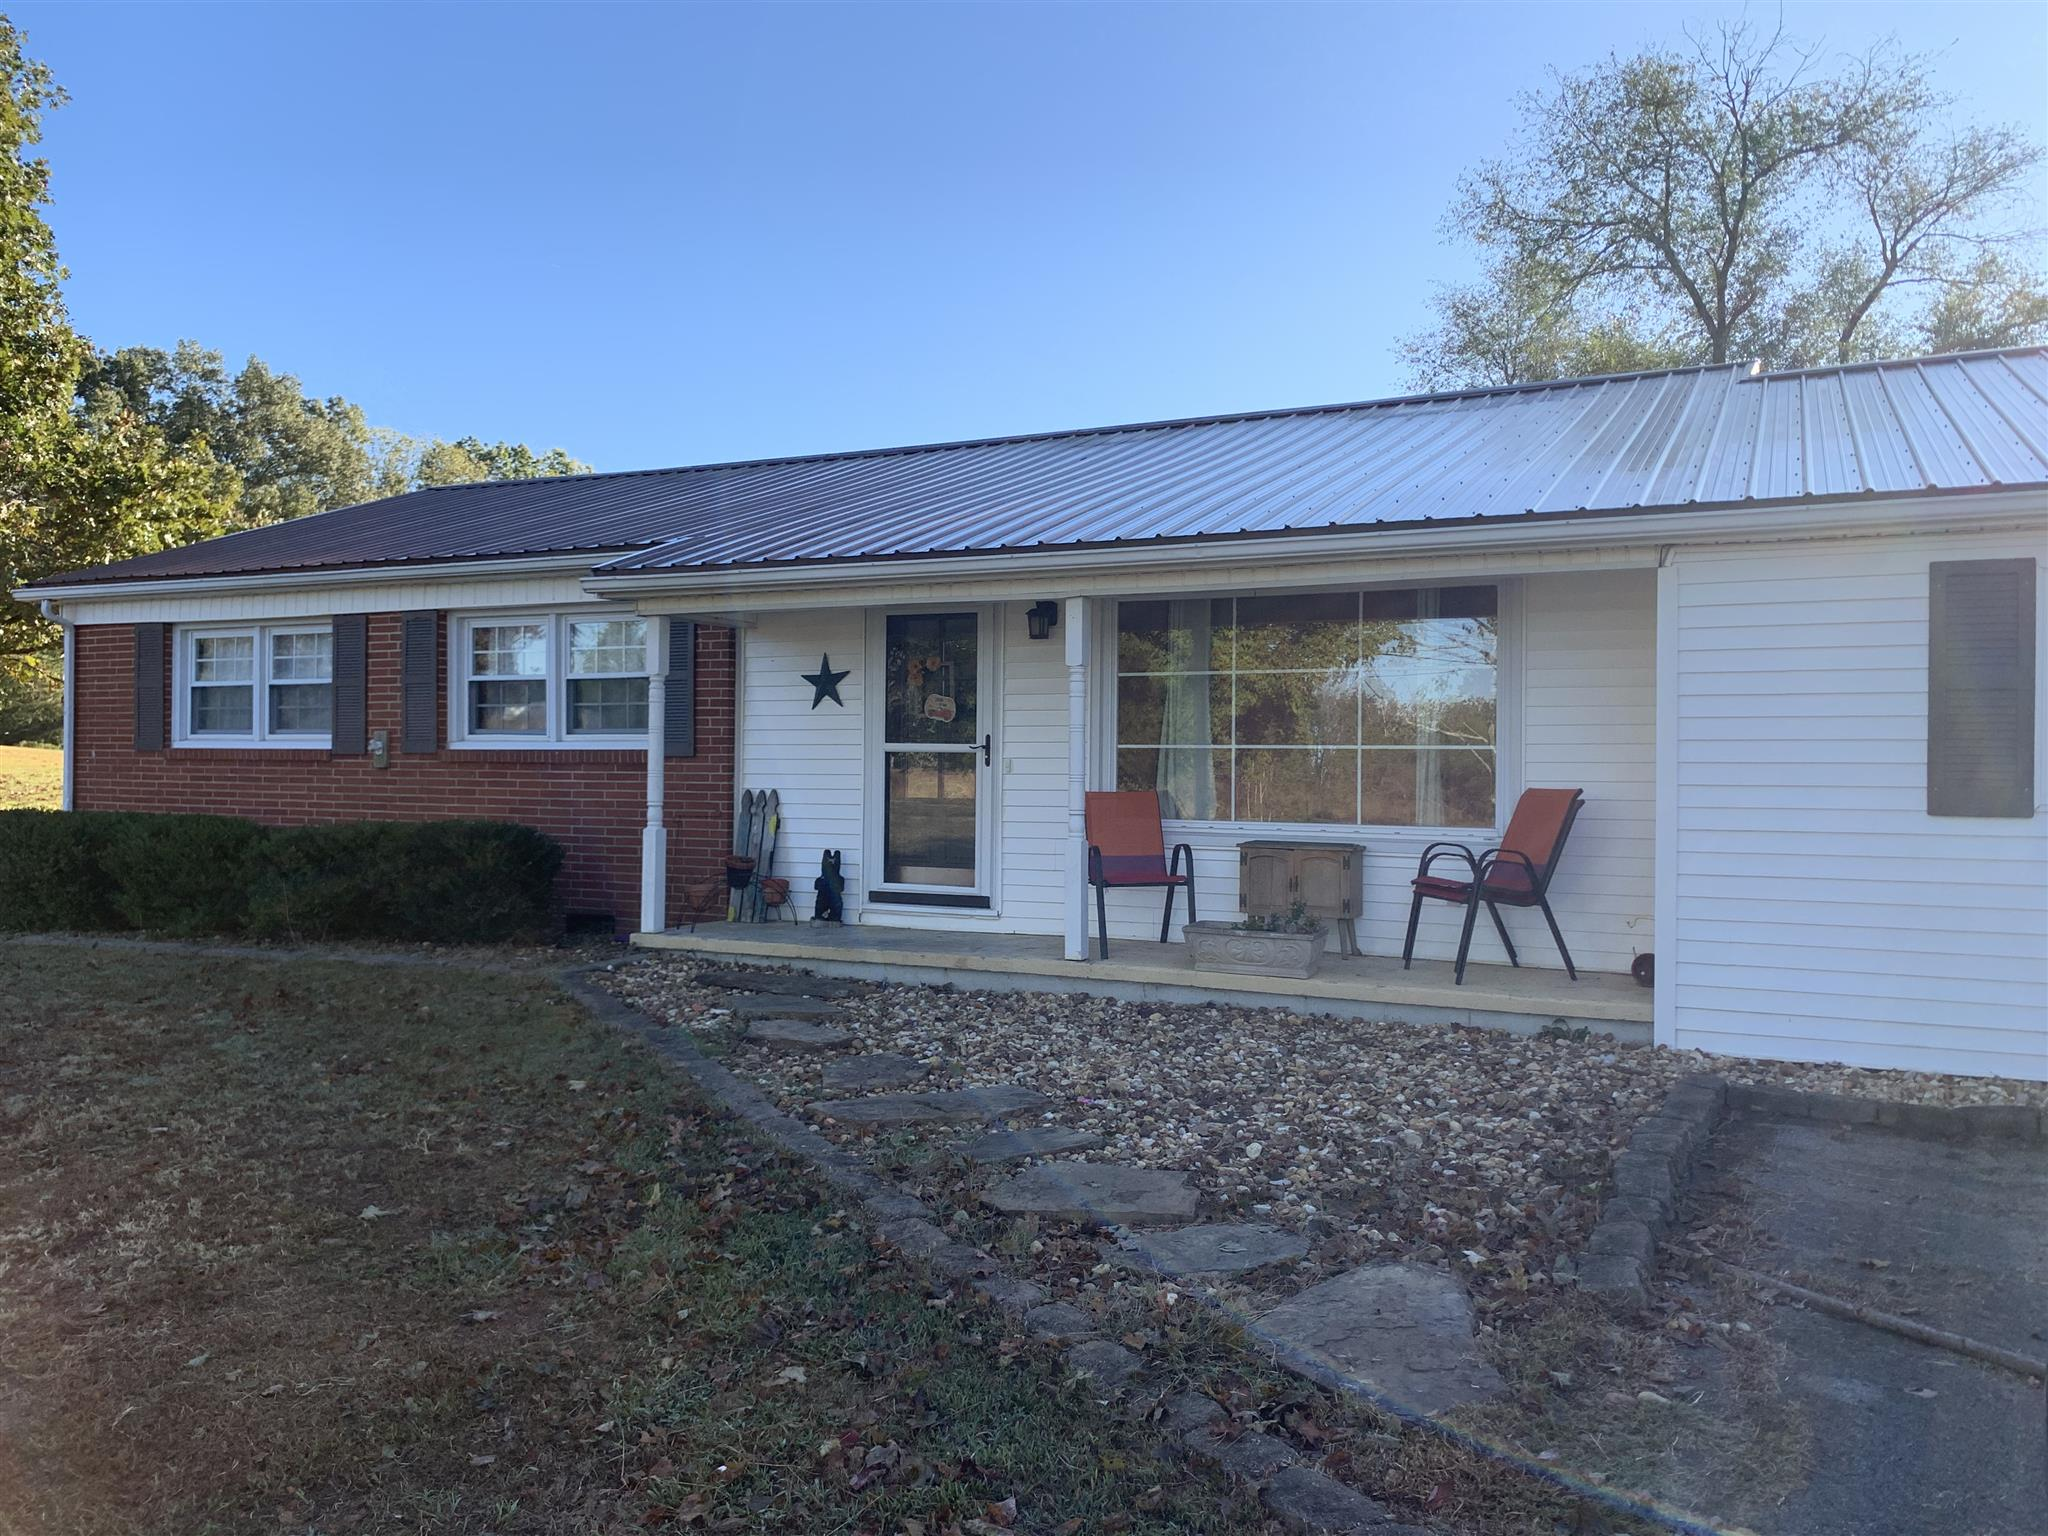 13705 Old Kentucky Rd, Walling, TN 38587 - Walling, TN real estate listing